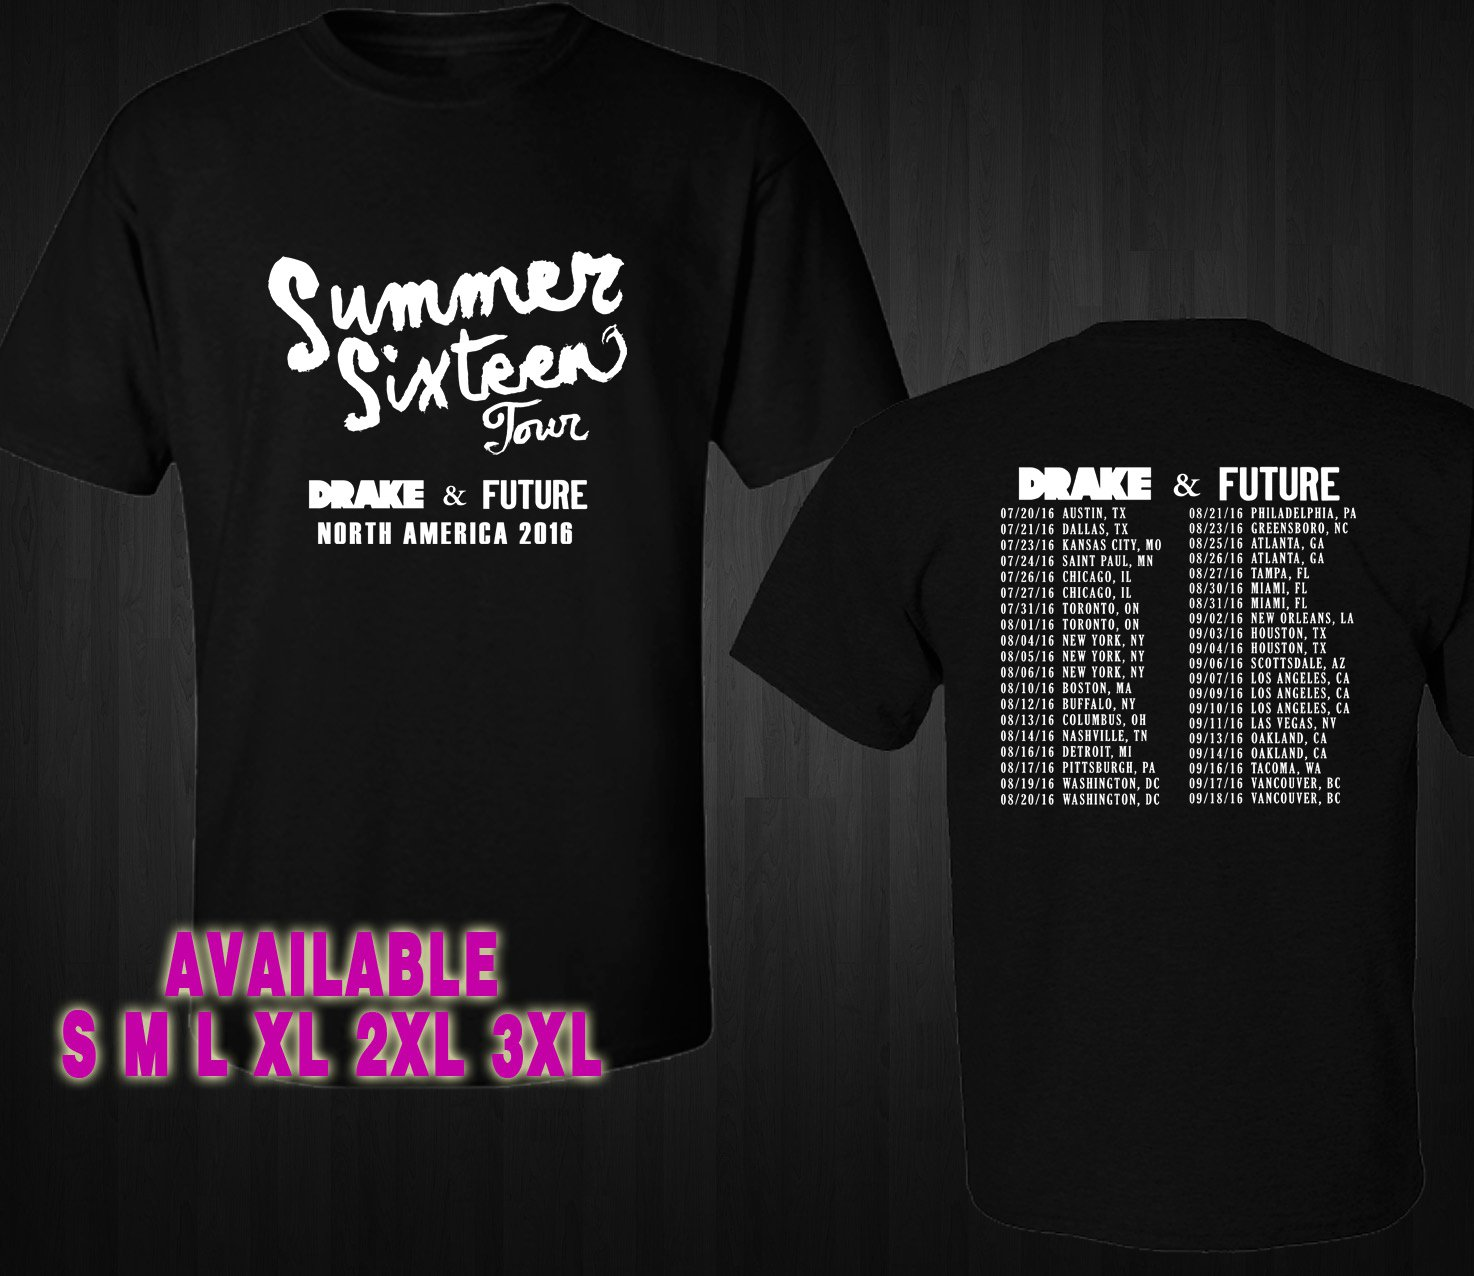 WOW DRAKE SUMMER SIXTEEN TOUR 2016 BLACK TEE S-3XL ASTR